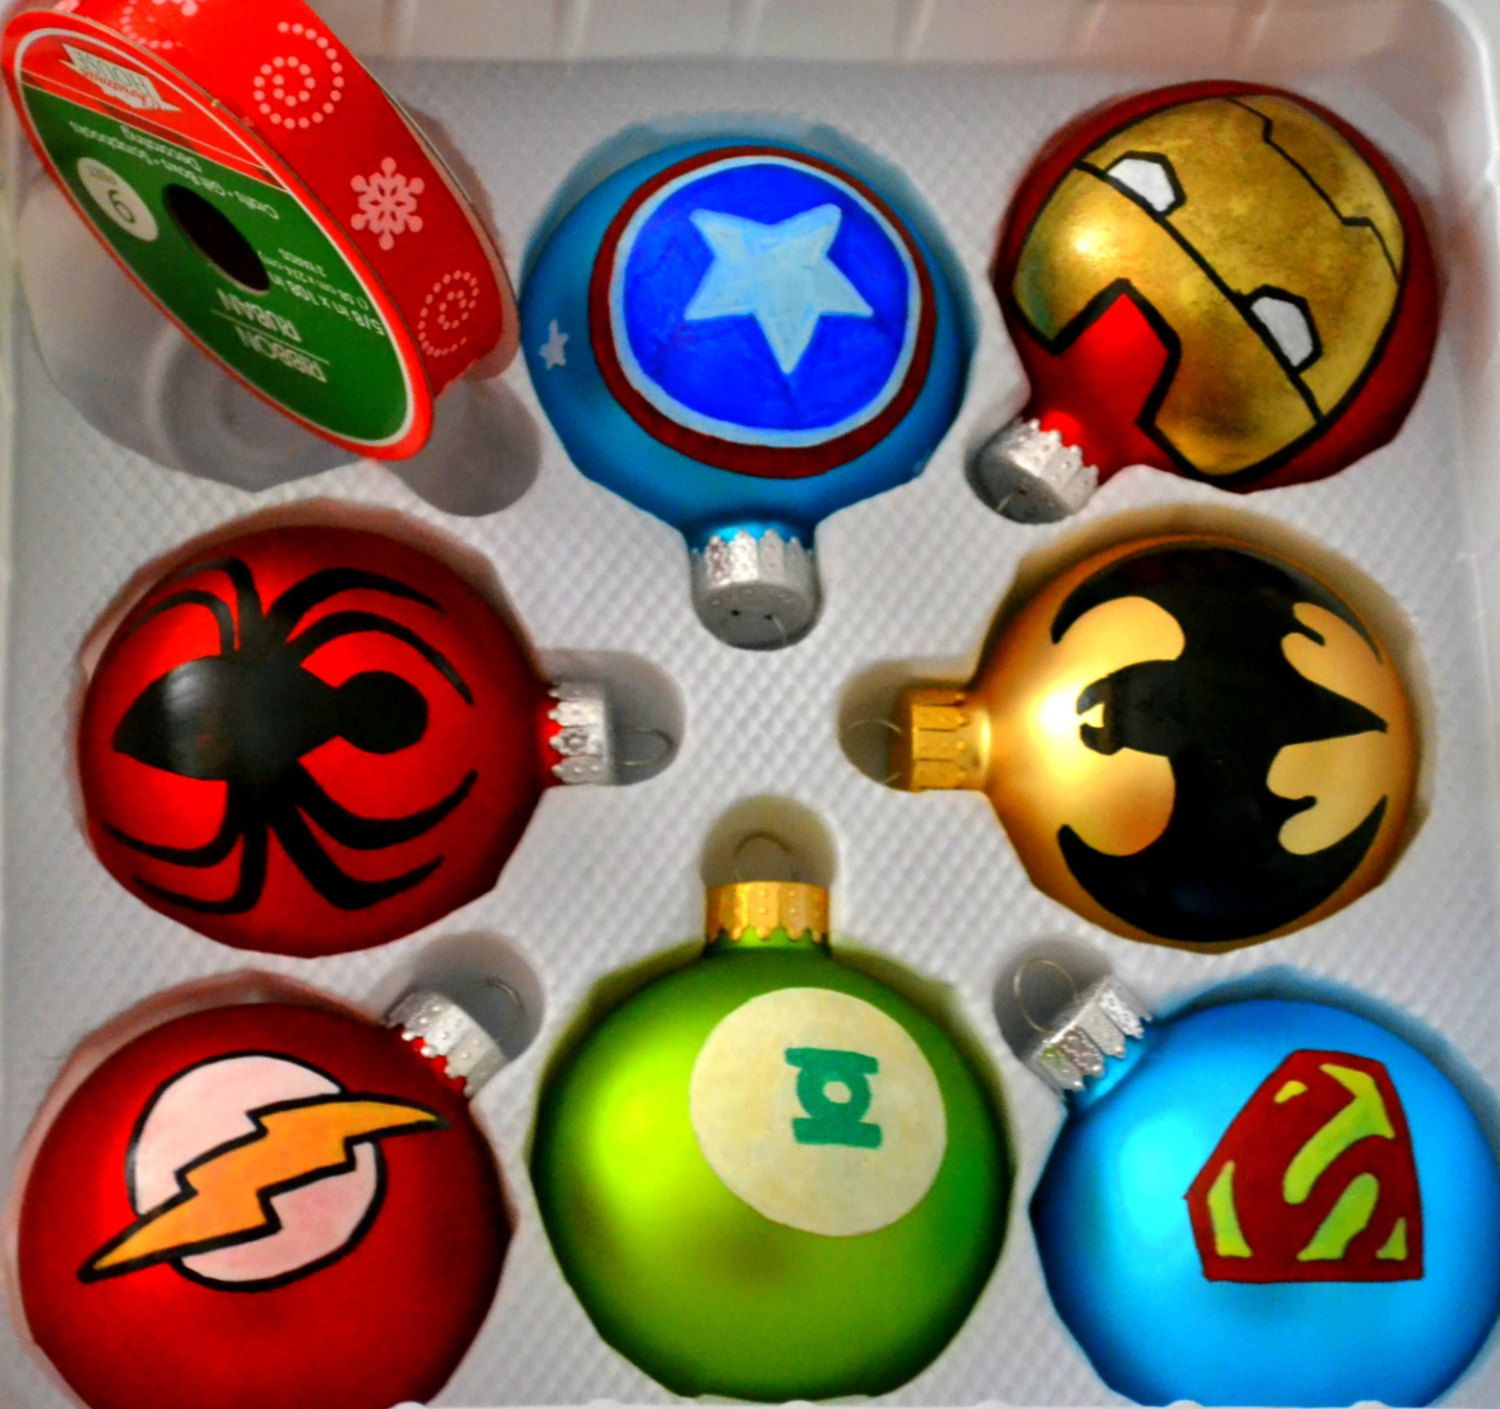 Superhero Ornaments Avengers Superman Spiderman Iron Man Captain America Green Lantern Flash Chris Superhero Christmas Geek Christmas Diy Christmas Ornaments